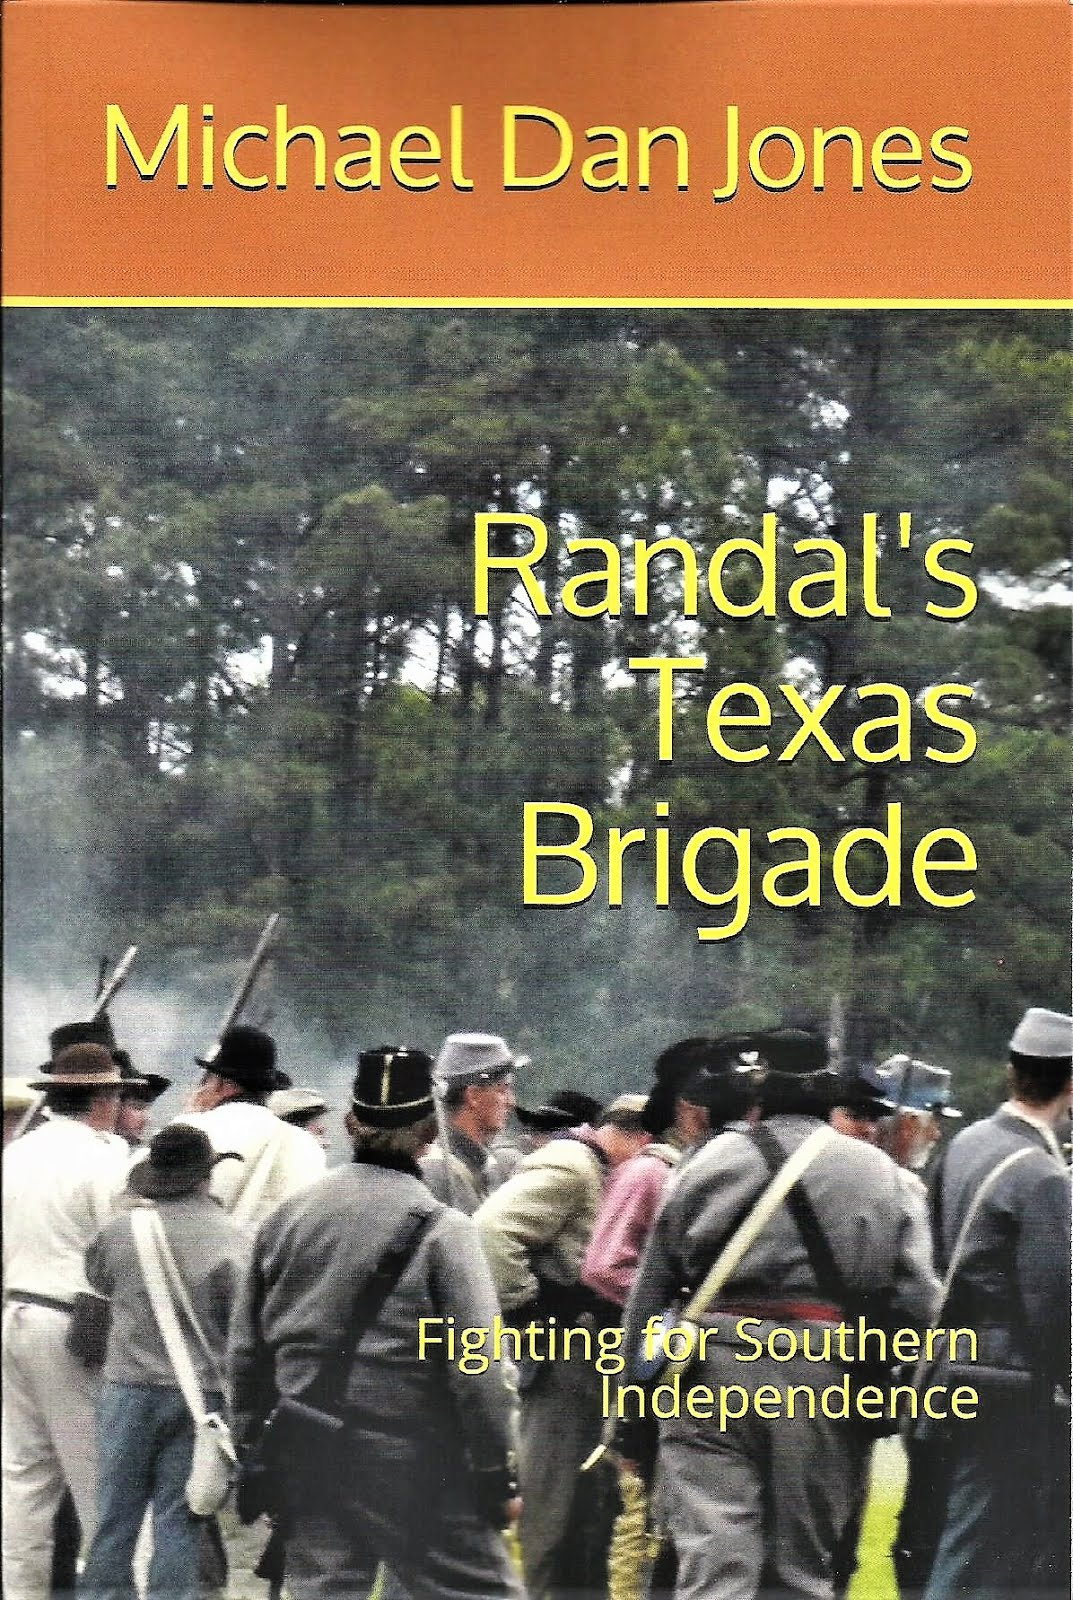 Randal's Texas Brigade: Fighting for Southern Independence